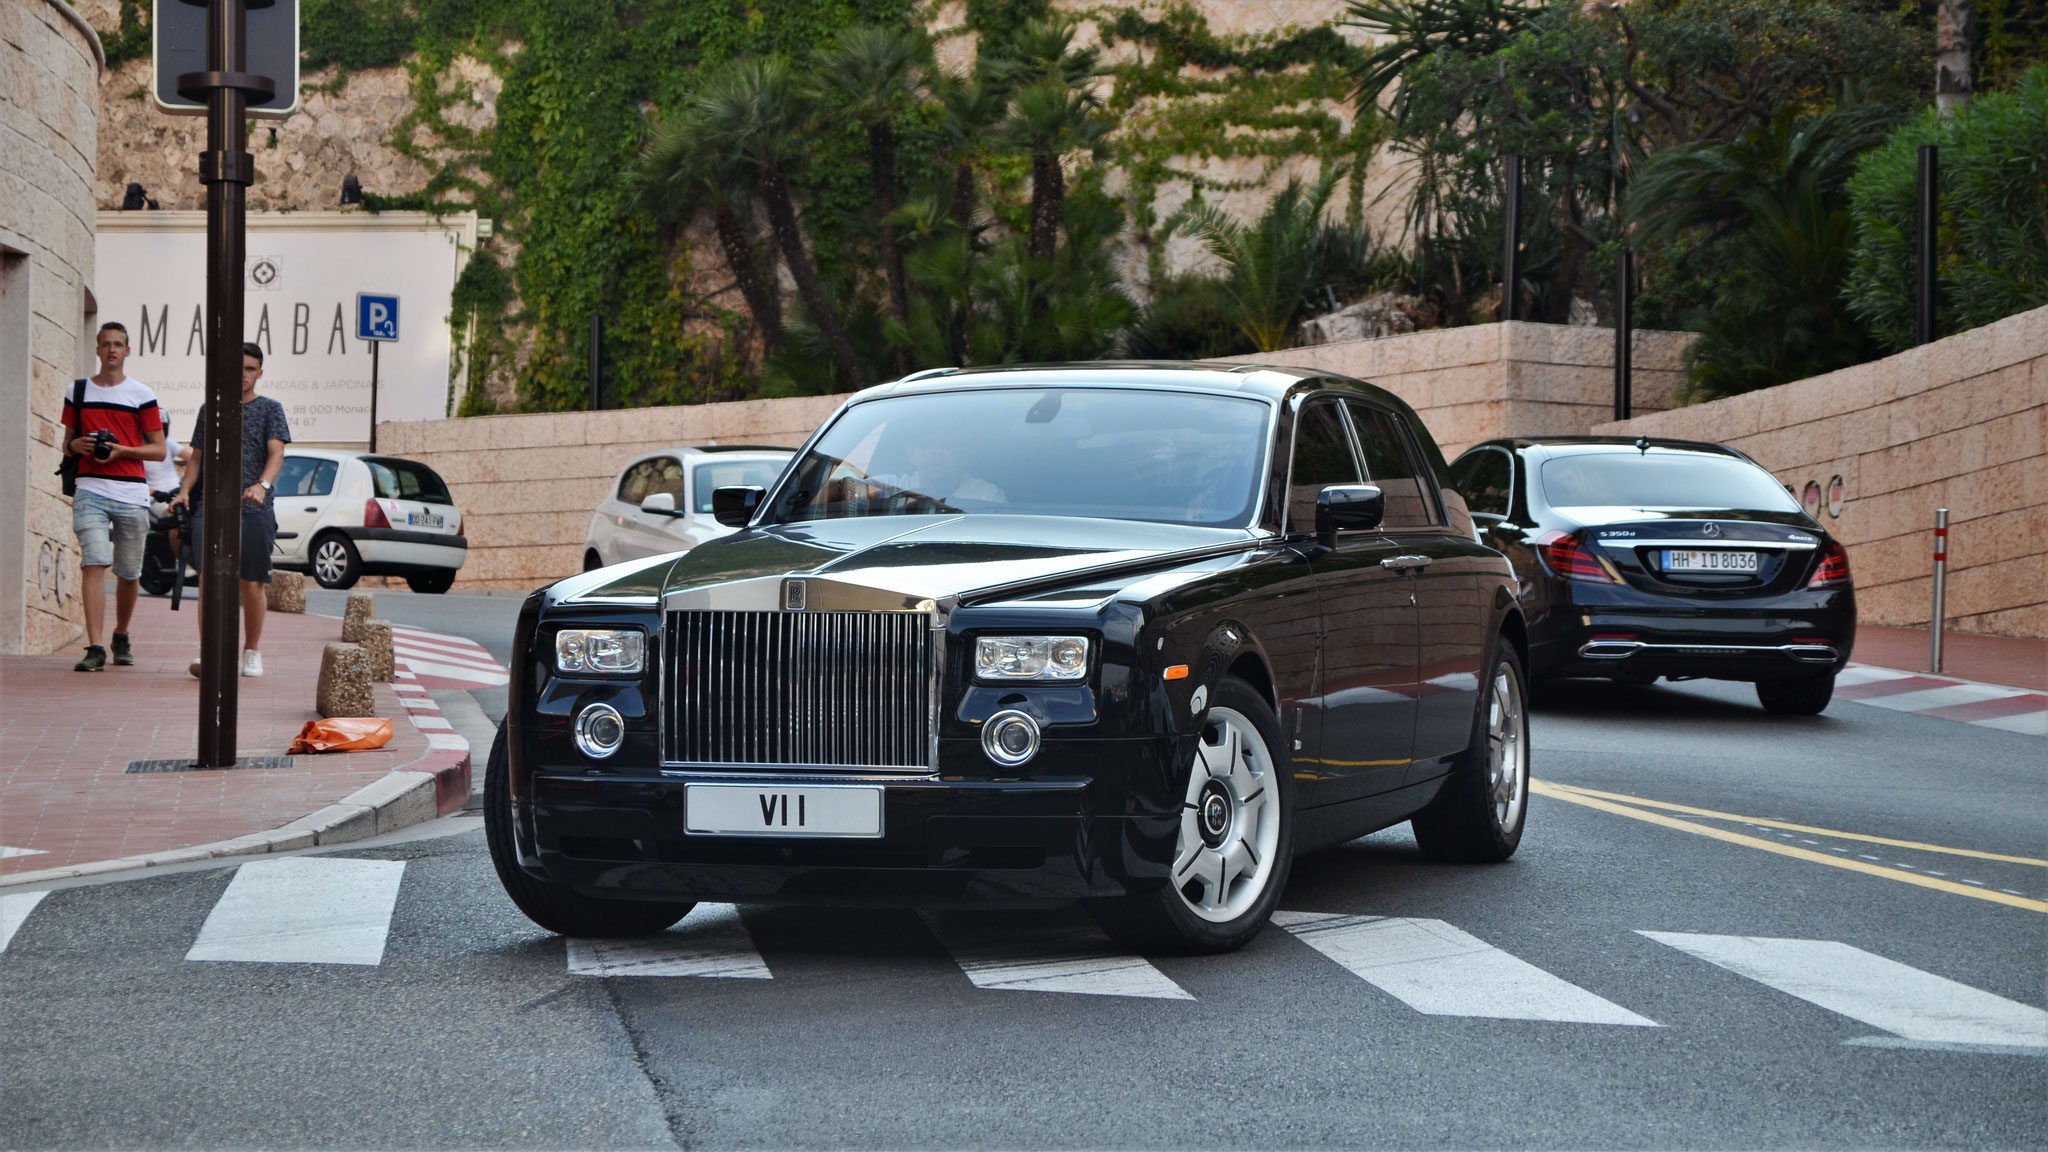 Rolls Royce Phantom - V11 (GB)